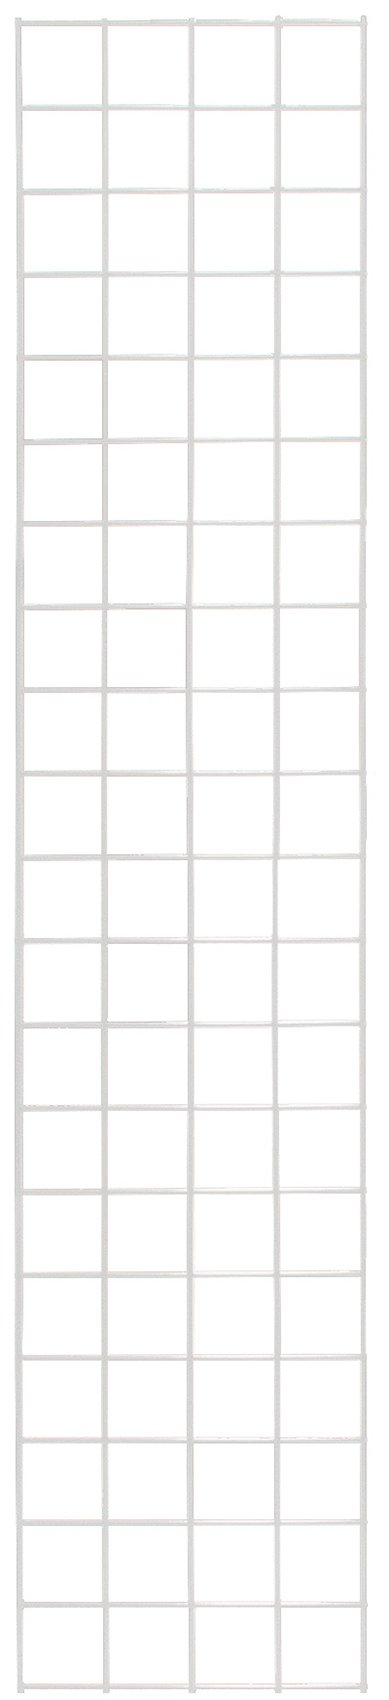 KC Store Fixtures A04215 Gridwall Panel, 1' W x 5' H, White (Pack of 4)